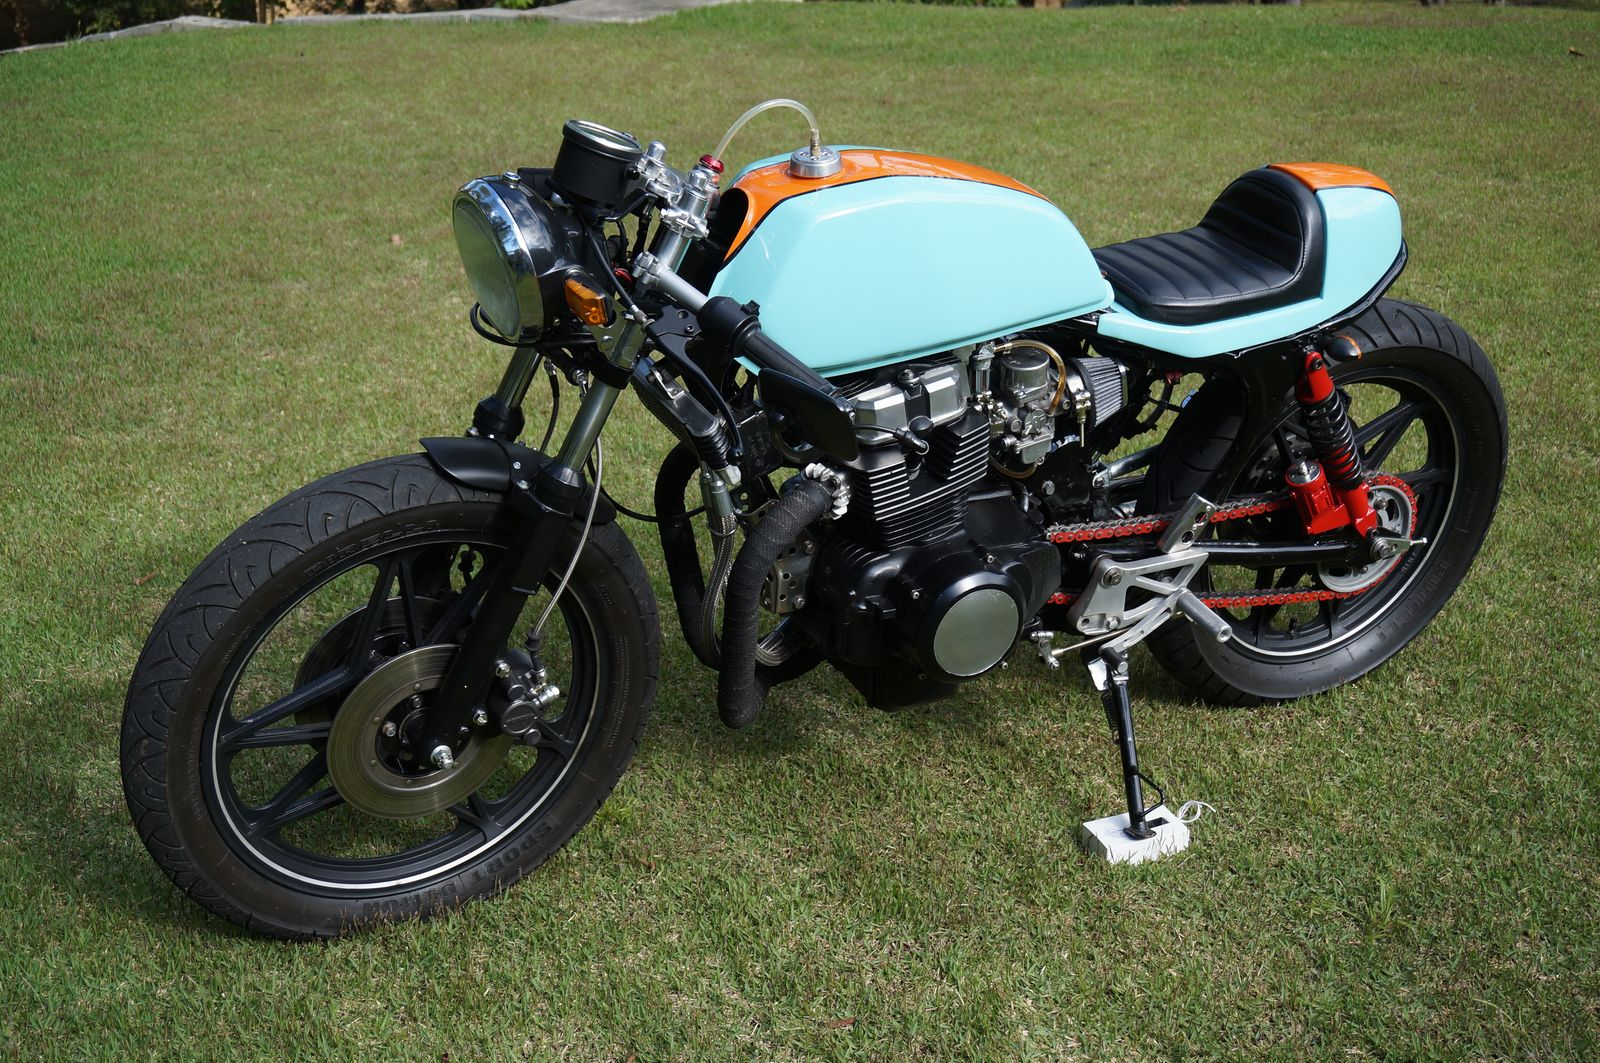 Cb 450 gulf by marco silva garagem cafe racer motocicletas cb 450 gulf by marco silva garagem cafe racer thecheapjerseys Image collections